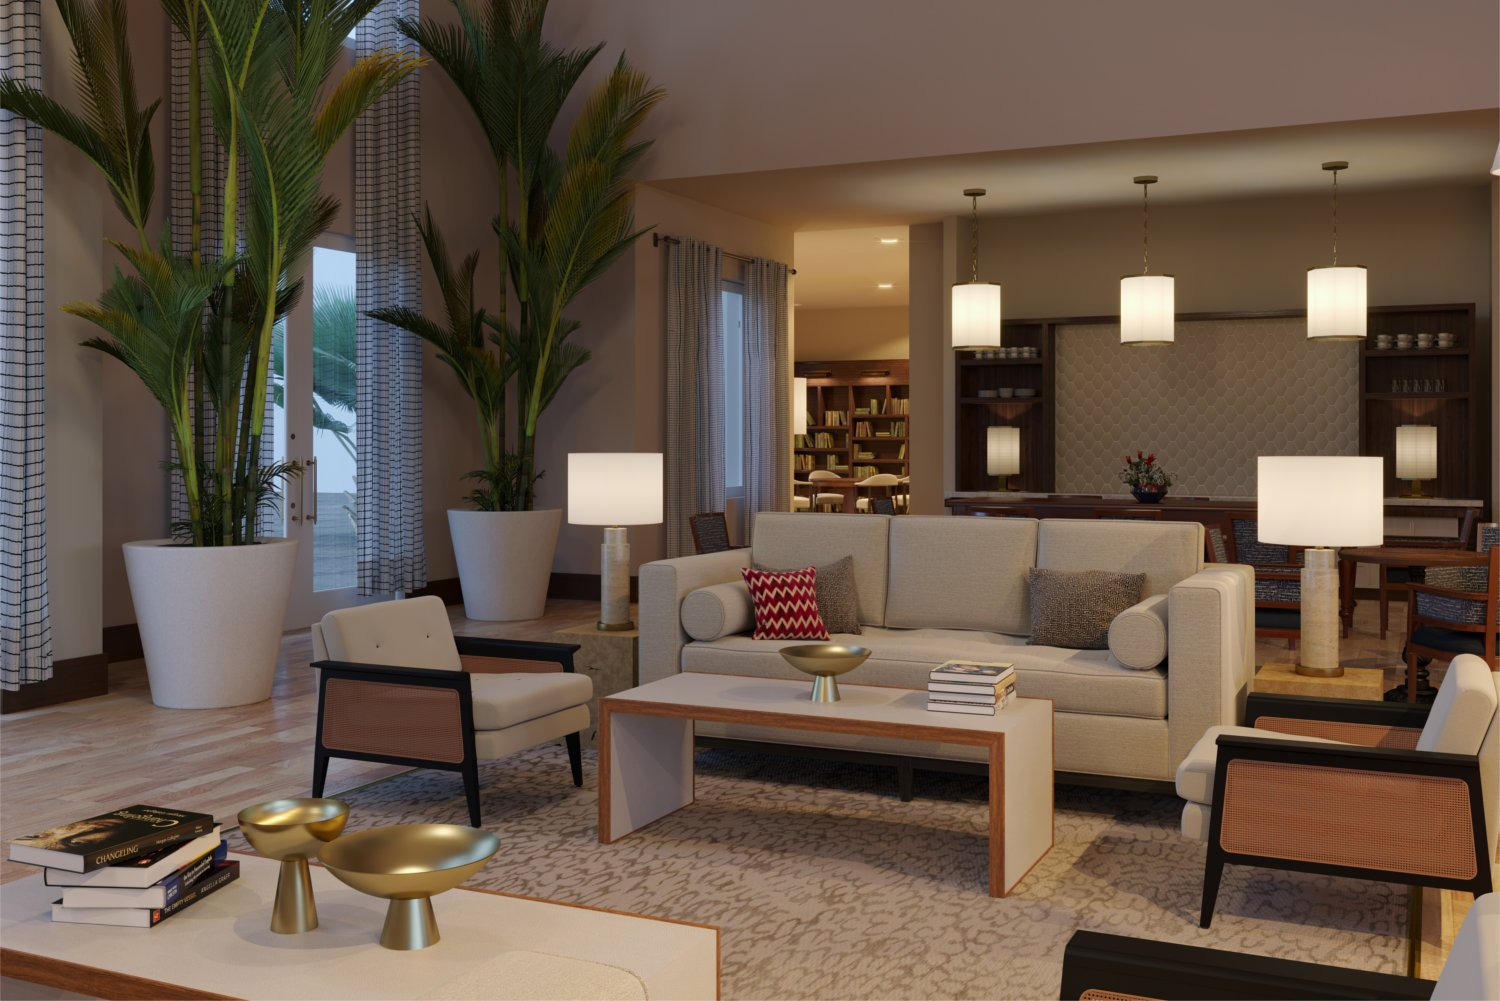 Rendering of living room in community